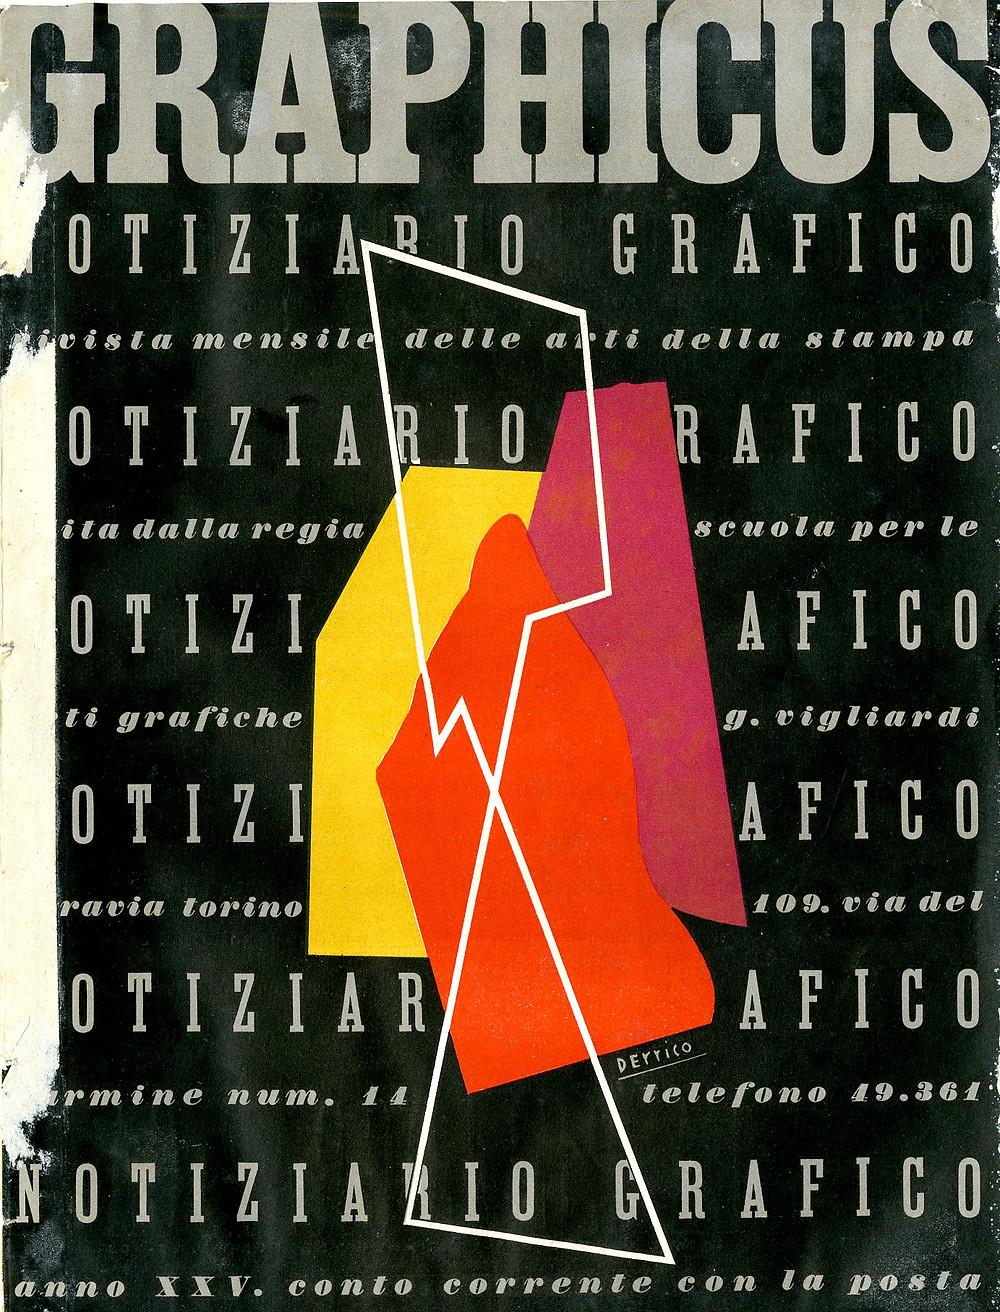 Ezio d'Errico drew the first abstract cover in Italy.